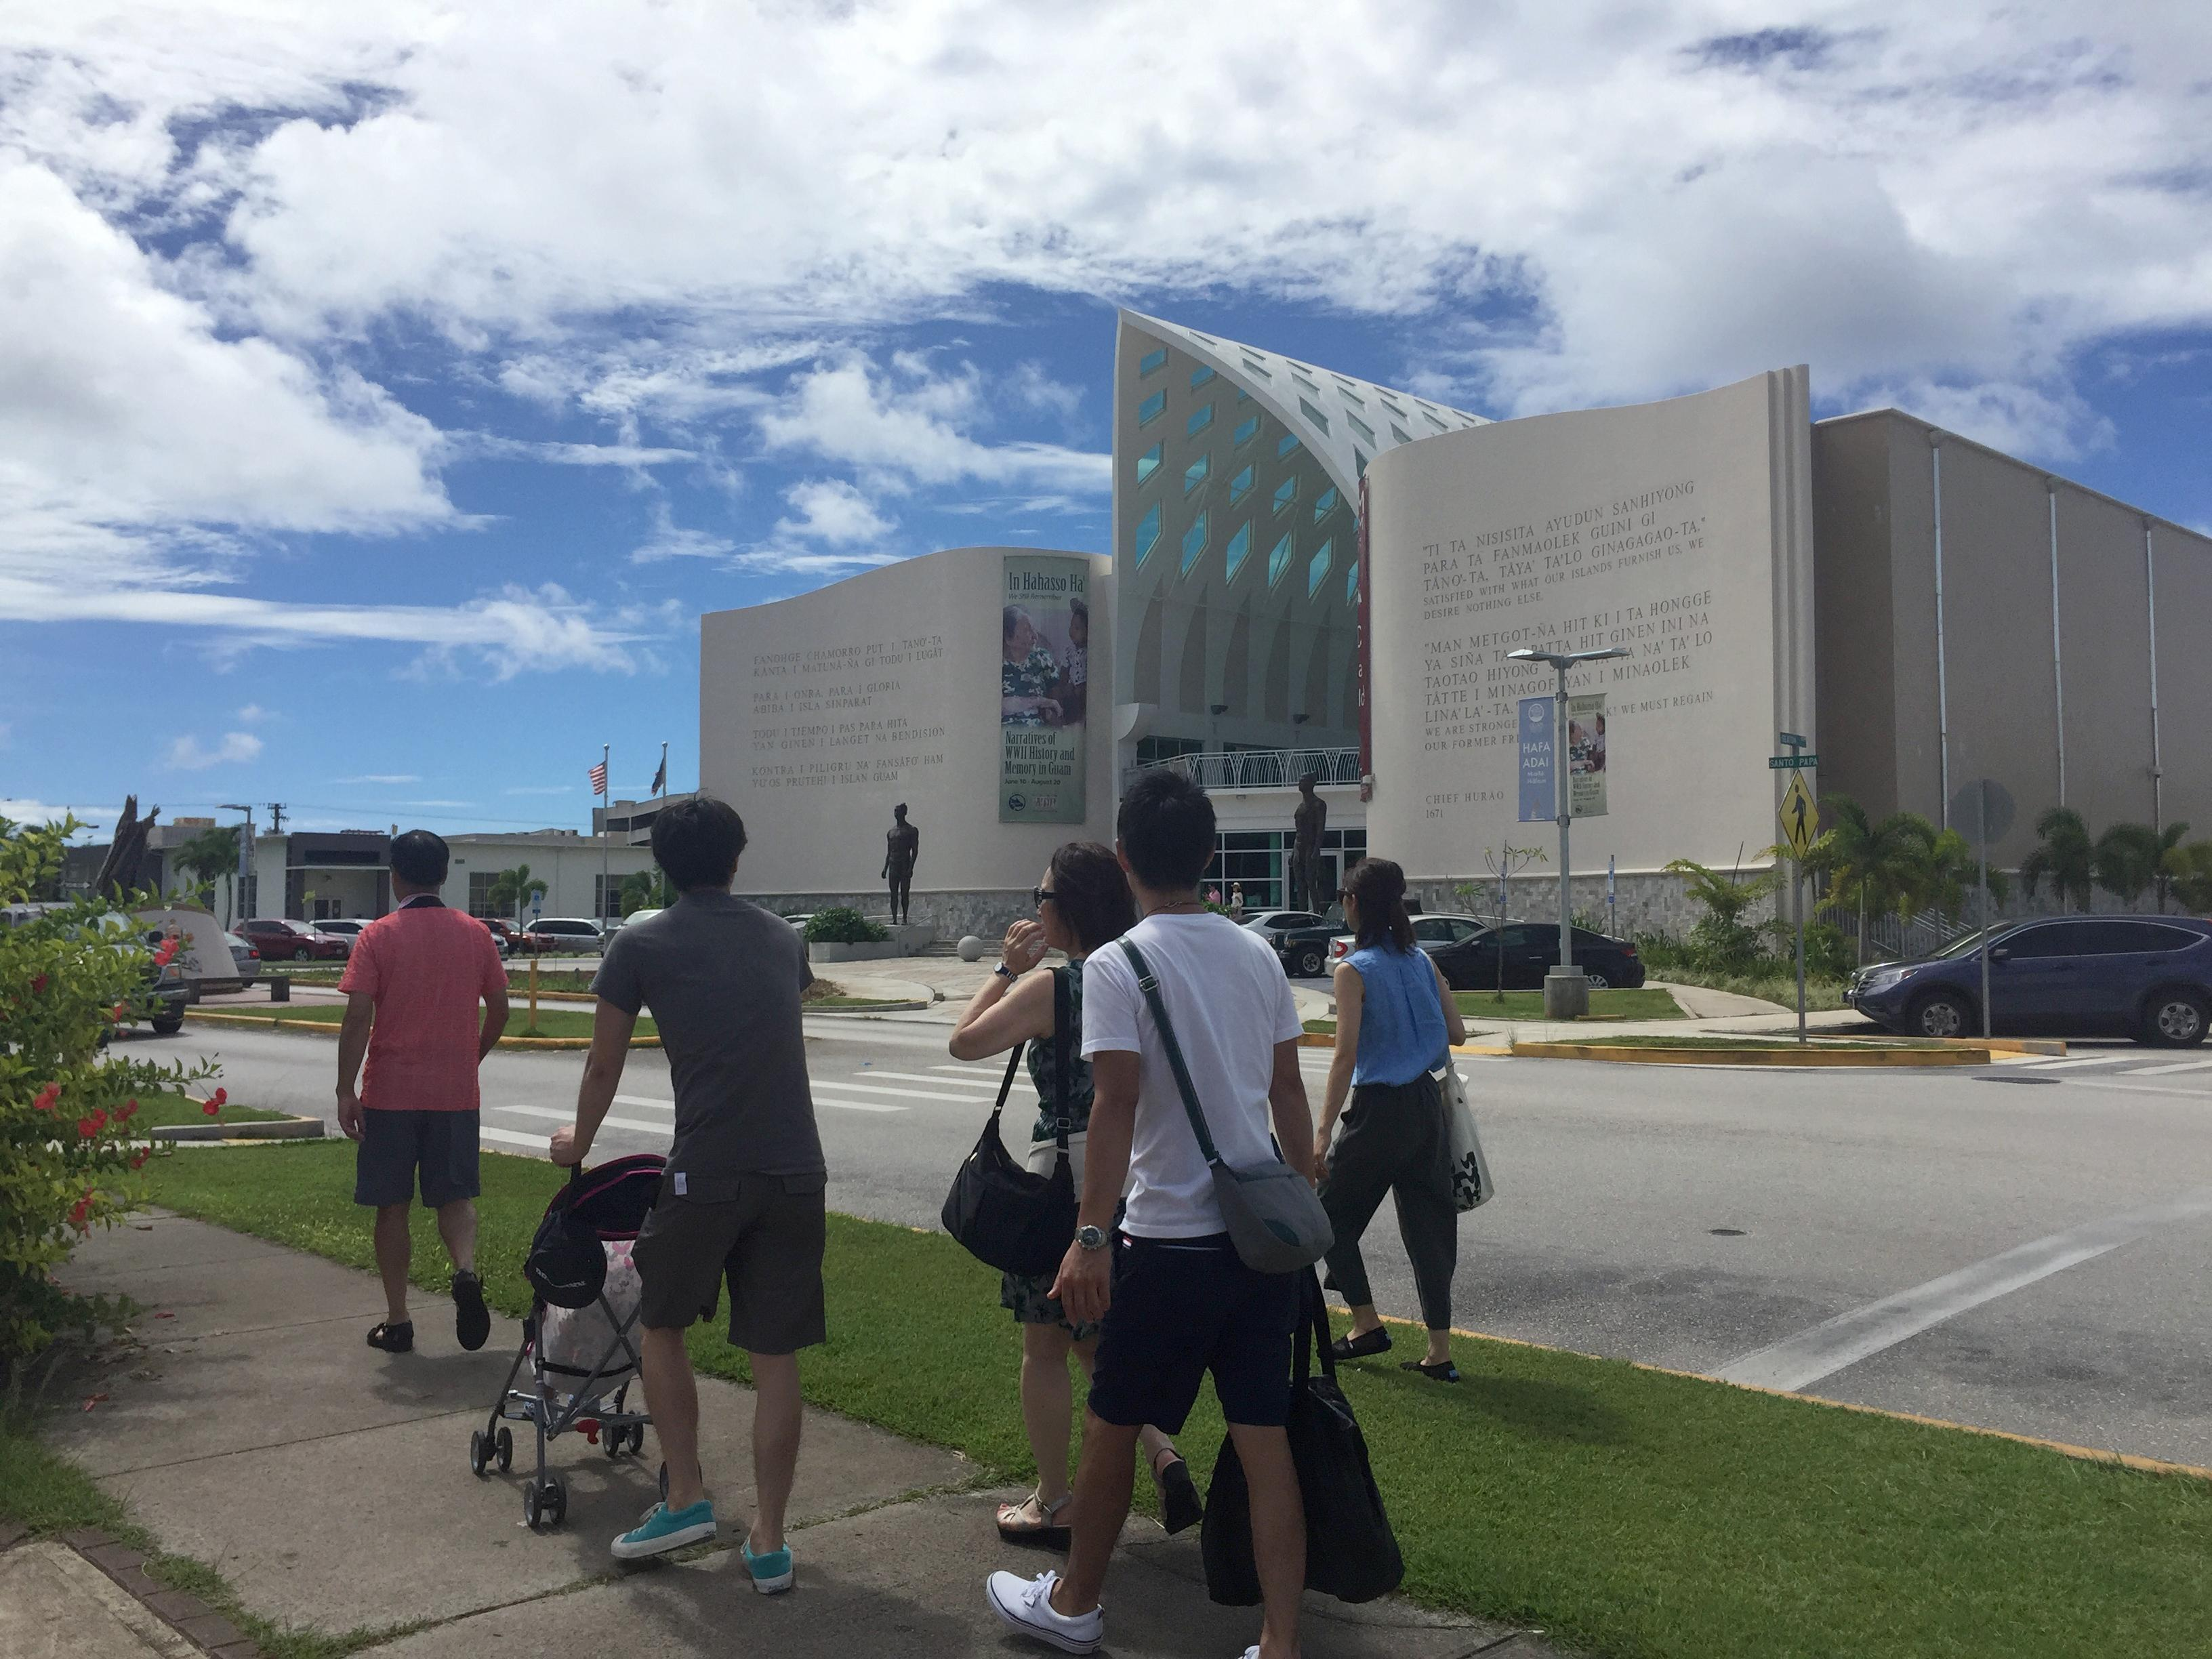 People walk around Hagatna, Guam Wednesday, Aug. 9, 2017. Despite government assurances, residents of the U.S. territory Guam say they're afraid after being caught in the middle of rising tensions between President Donald Trump and North Korea. (AP Photo/Grace Garces Bordallo)